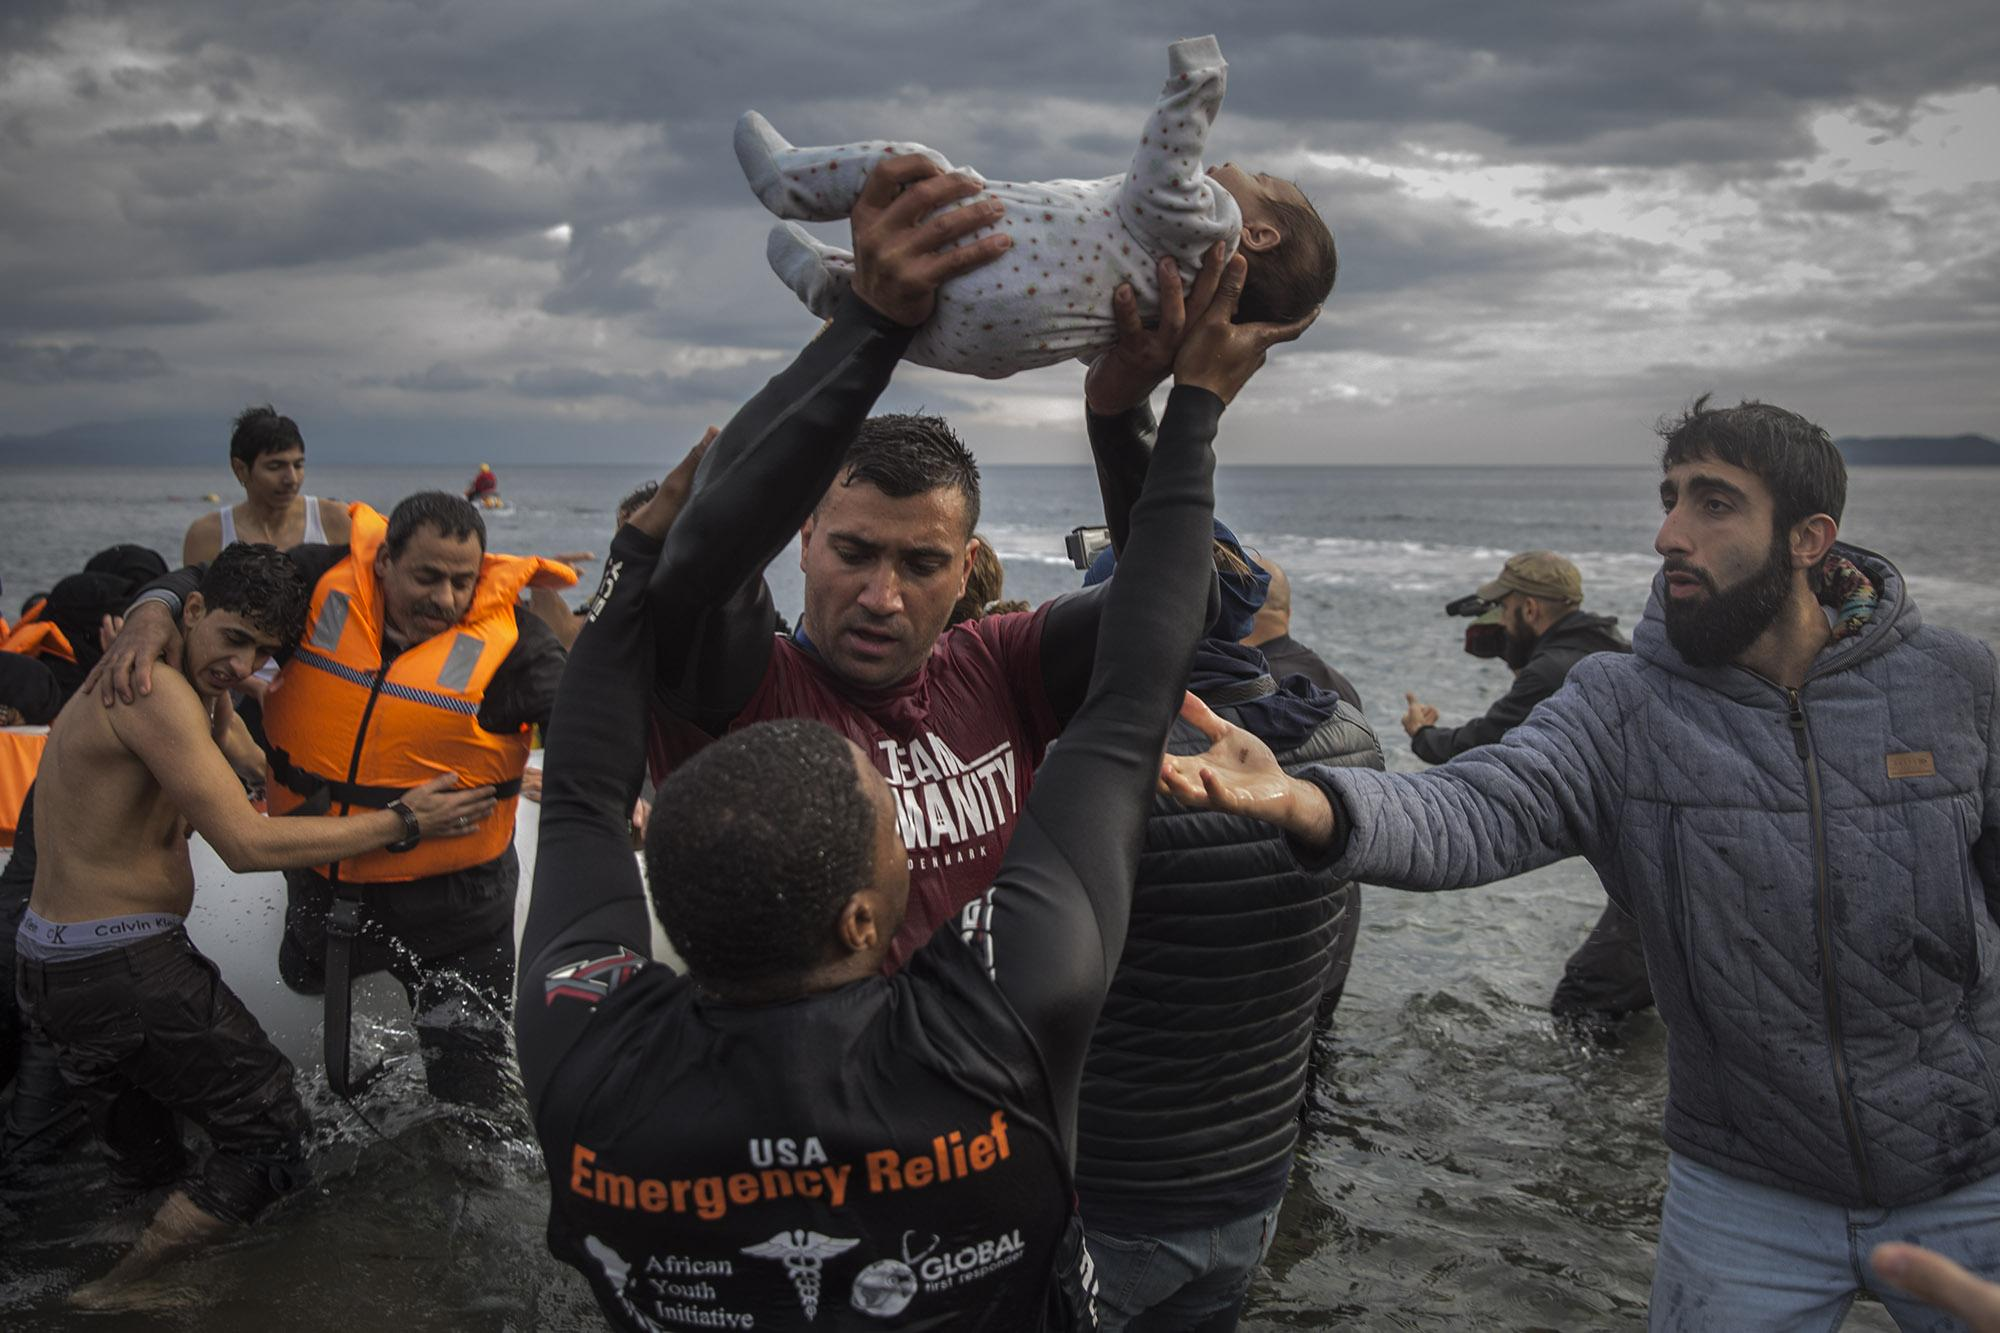 A volunteer holds up a baby as other tries to help him awkwardly as migrants and refugees disembark from a dinghy after their arrival from the Turkish coast to the Greek island of Lesbos, Wednesday, Nov. 25, 2015. The volunteer holding the baby is Salam Aldeen, who was absurdly acused of human traficking by Greek coastguards in January 2016 while helping on migrants rescue operations in the island of Lesbos. (© Santi Palacios)